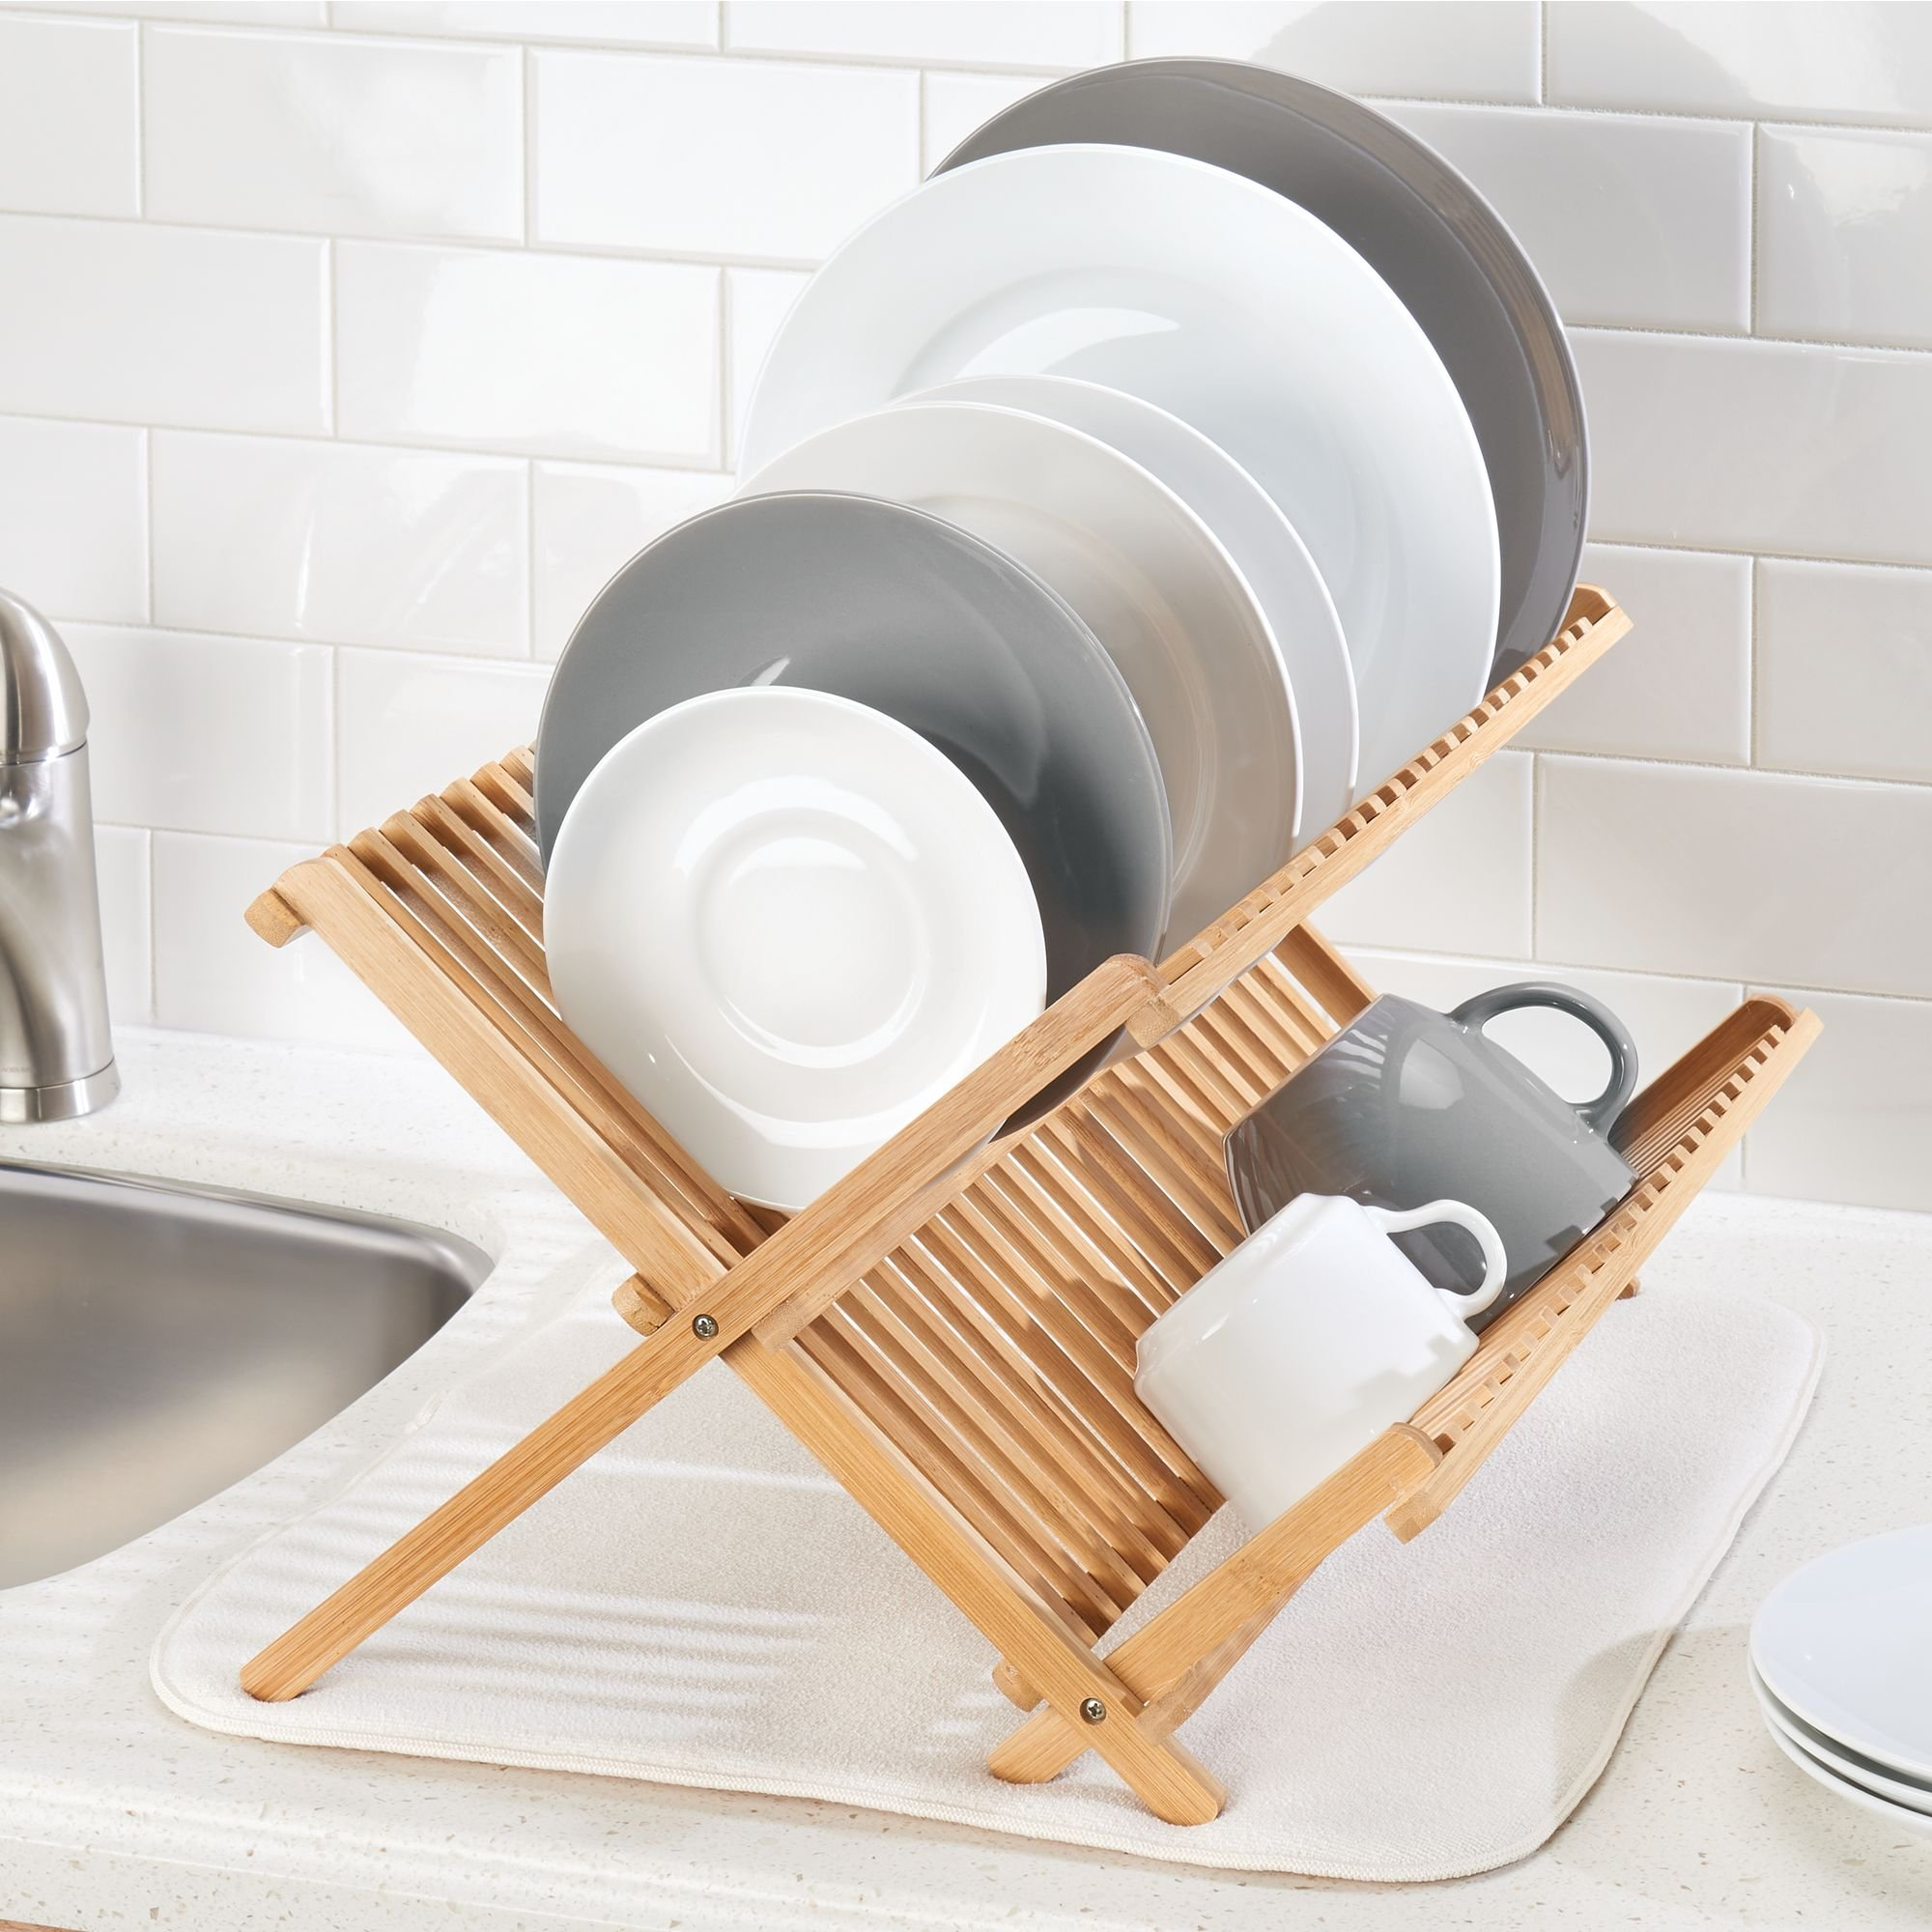 mDesign Bamboo Kitchen Countertop, Sink Dish Drying Rack � Extra Large Capacity, 2 Tiers - Foldable and Collapsible, 100% Bamboo Wood, Natural Light Wood by mDesign (Image #3)